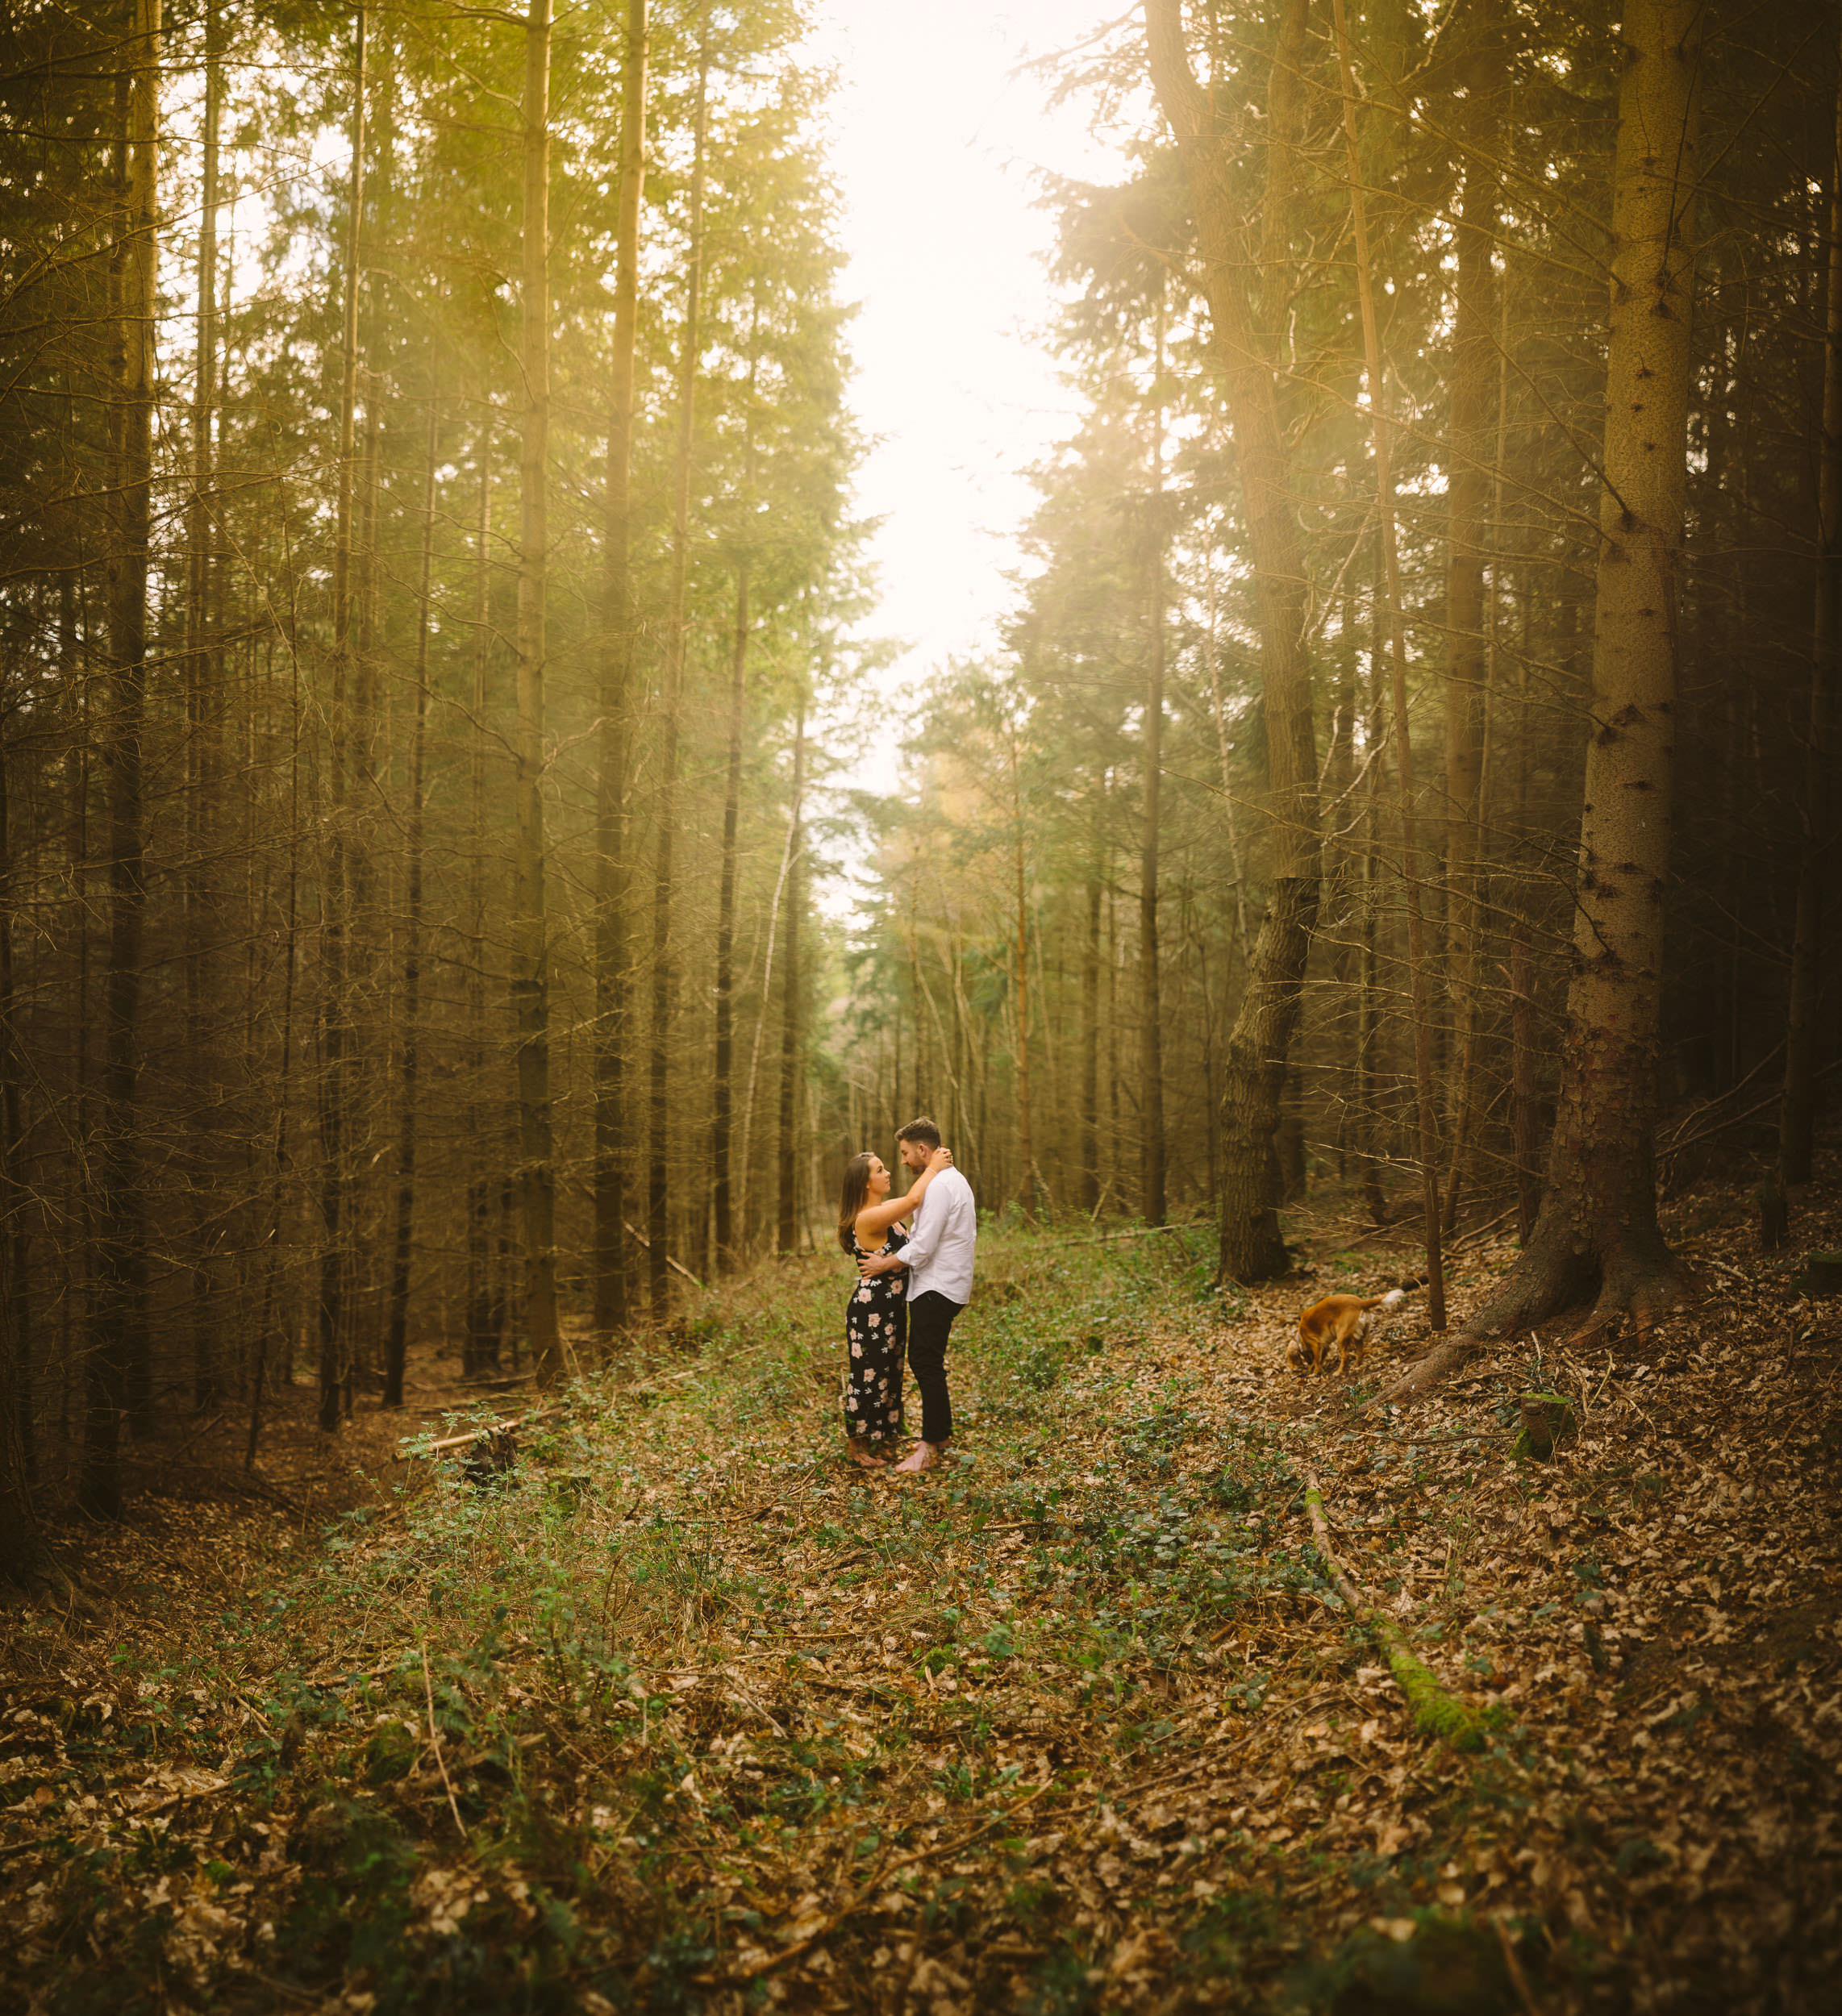 Engaged couple embrace in an avenue of trees deep in the forest